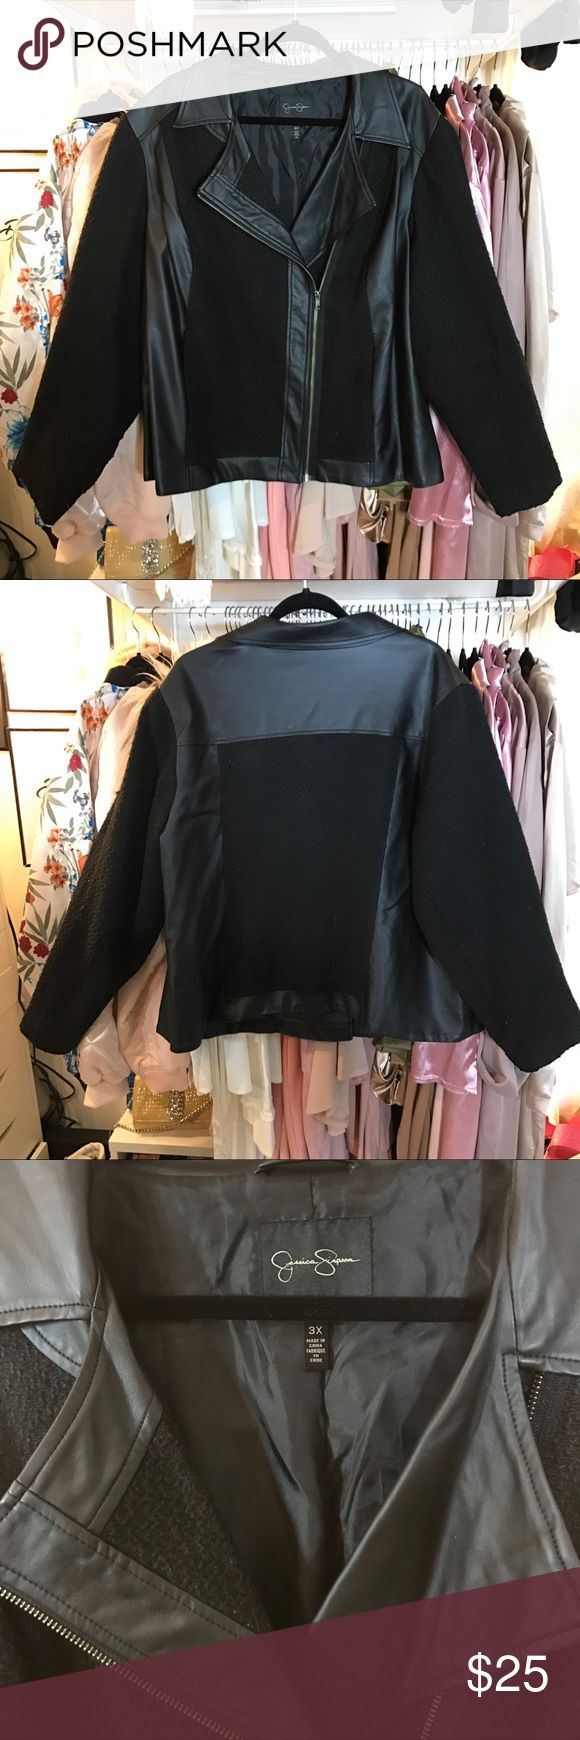 PLUS SIZE JESSICA SIMPSON MOTO JACKET *POP UP CLOSET SALE* Good condition authentic Jessica Simpson MOTO jacket with knitted fully lined sleeves. Fits true to size. 🔈ALL LISTINGS ARE AS IS AND EXACTLY LIKE THE PICTURE SHOWN. I DO NOT LIST TORN, RIPPED OR DEFECTIVE ITEMS. IF YOU FALSELY CLAIM THE GARMENT IS NOT AS DESCRIBED TO GET OUT OF PAYING FOR YOUR LISTING YOU WILL BE BLOCKED AND REPORTED. Jessica Simpson Jackets & Coats